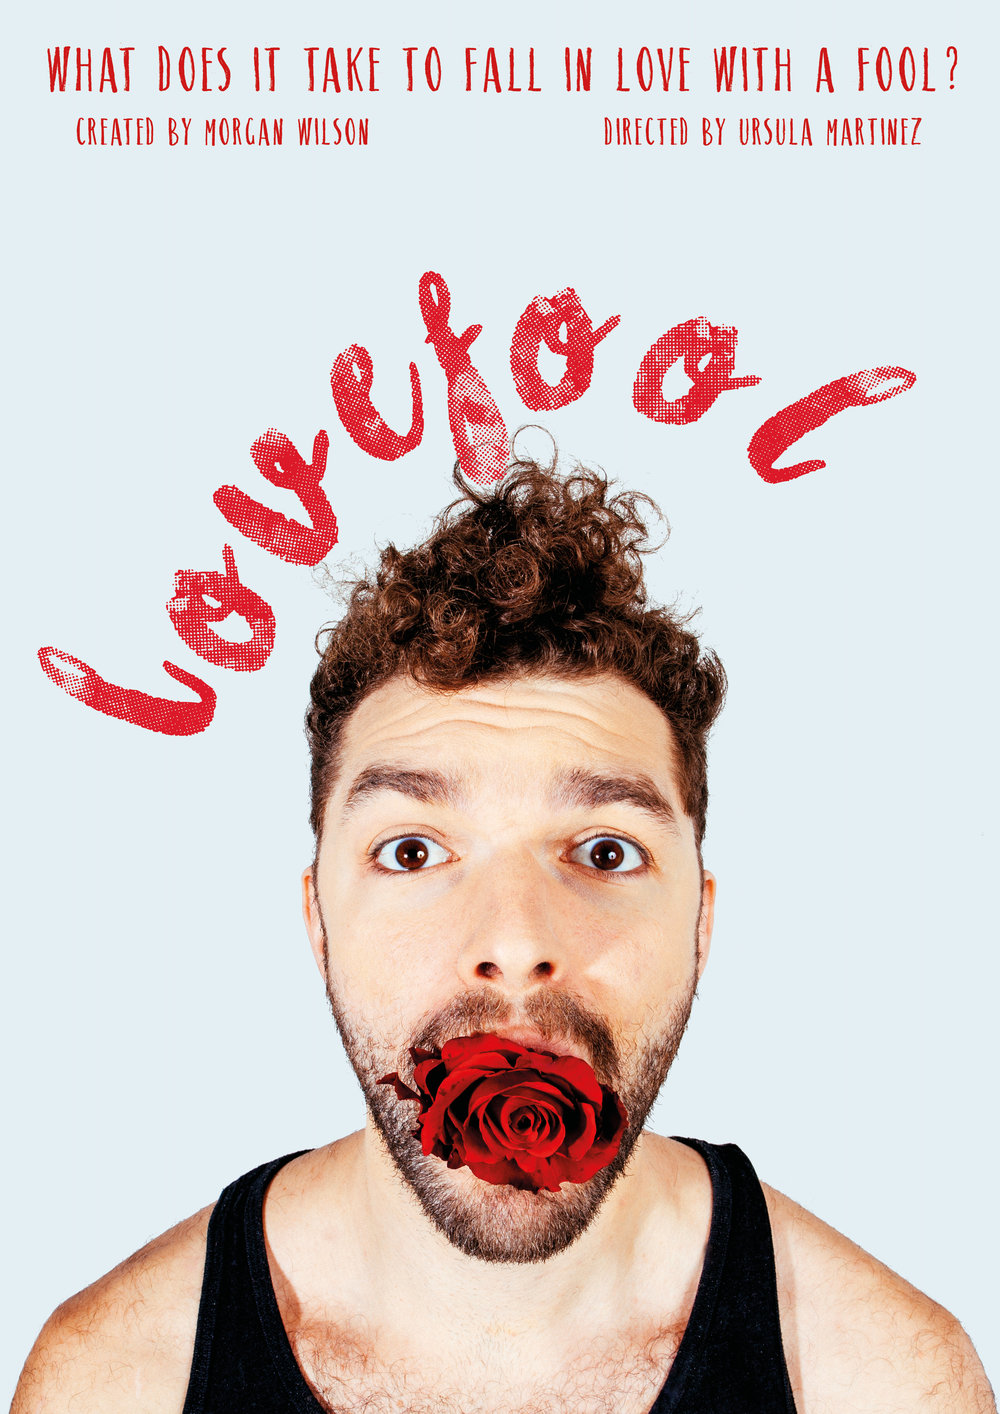 Lovefool - What does it take to fall in love with a fool? Join multi-award winning person Morgan Wilson, as he comedically looks for love in all the wrong places. Using circus, physical theatre, sideshow, and puppetry to ask the